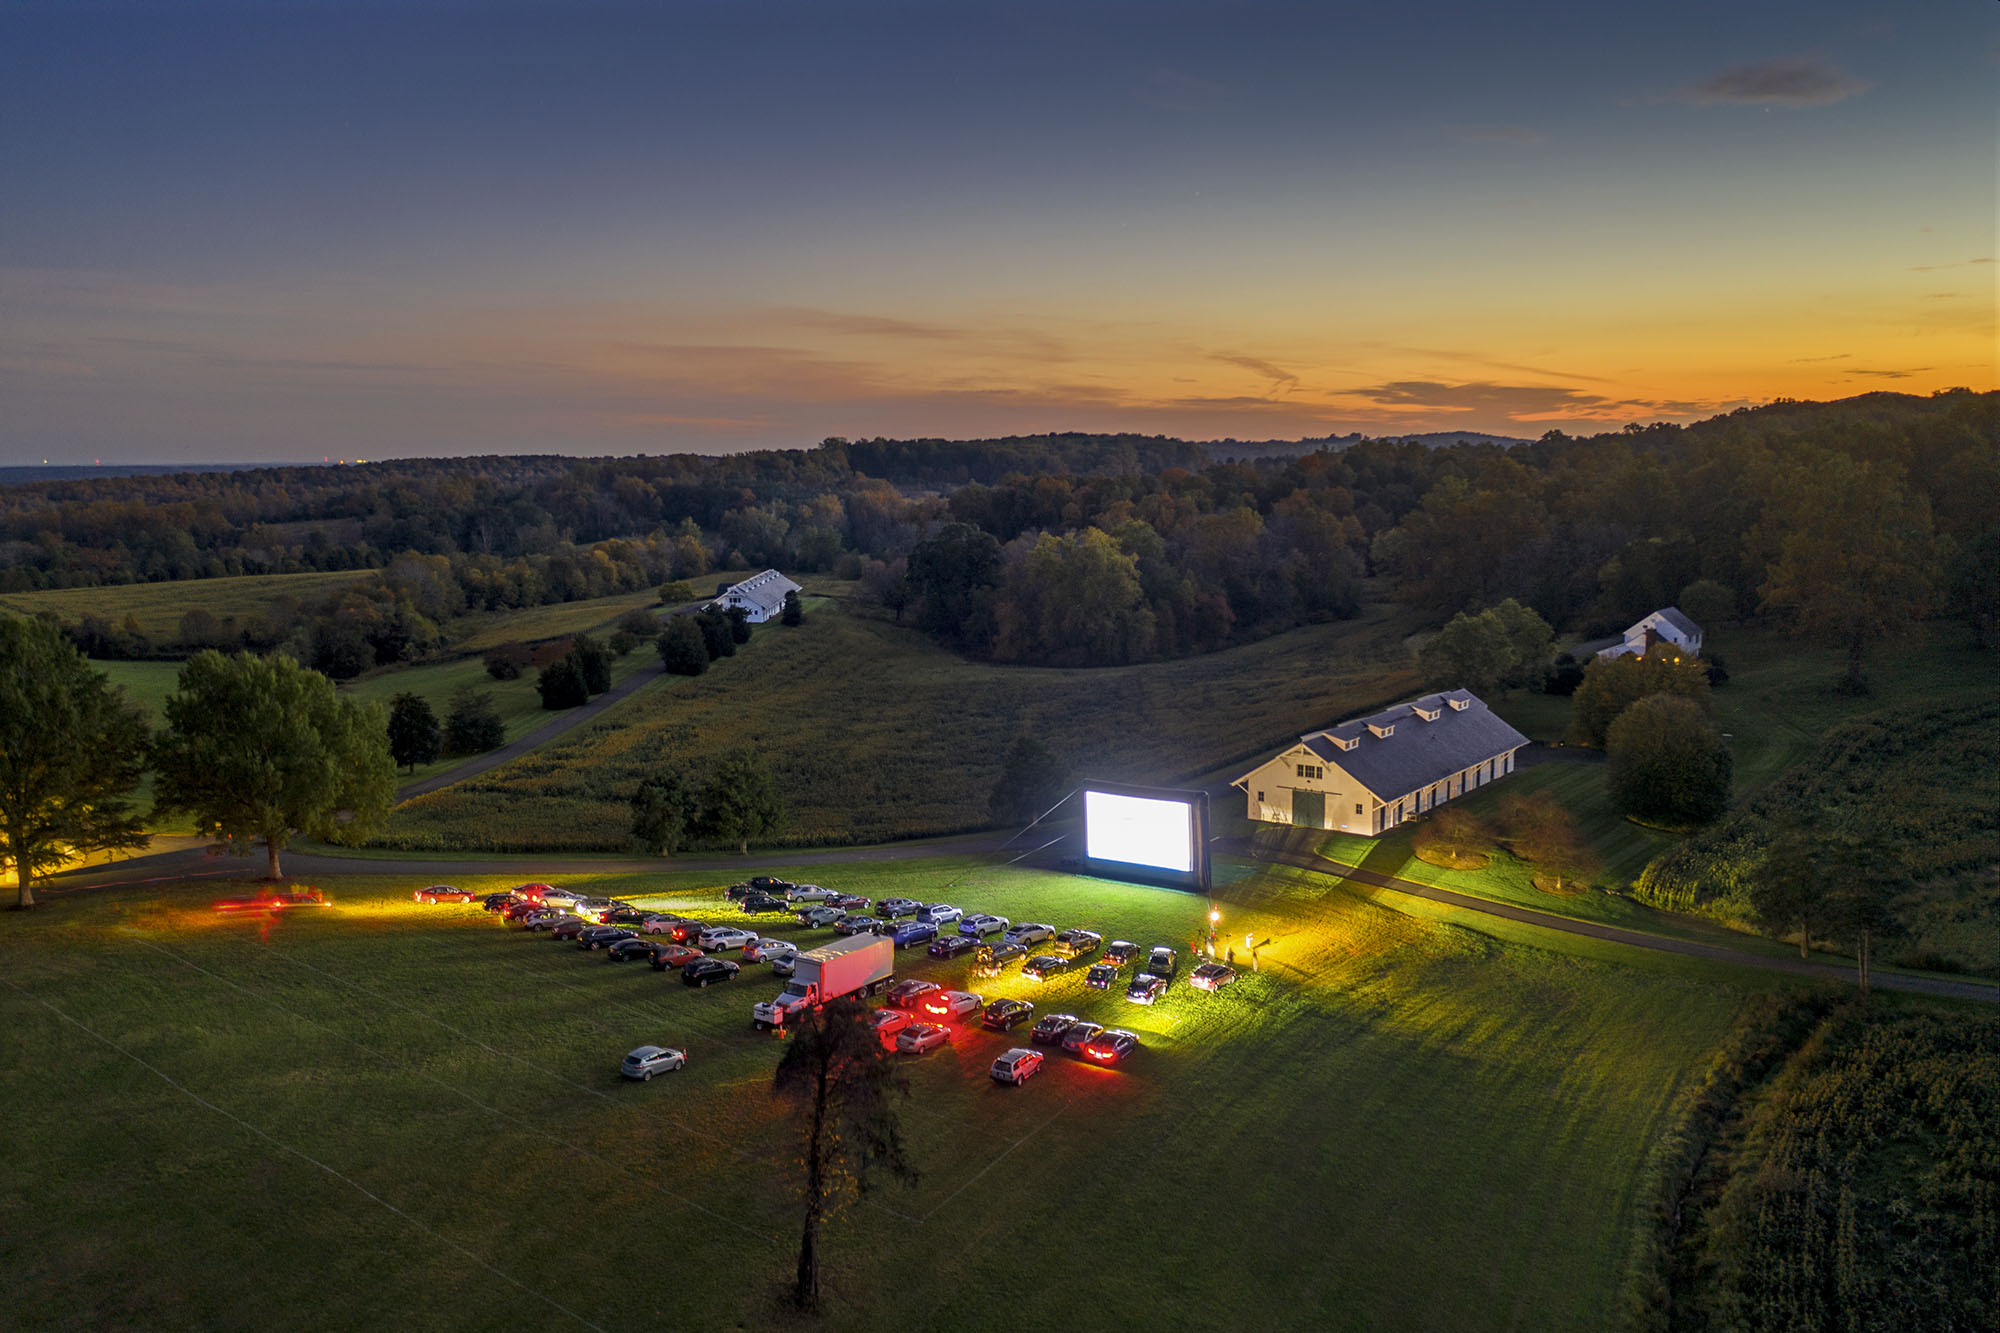 Virginia Film Festival to Return With In-Person and Drive-In Presentations in October - UVA Today